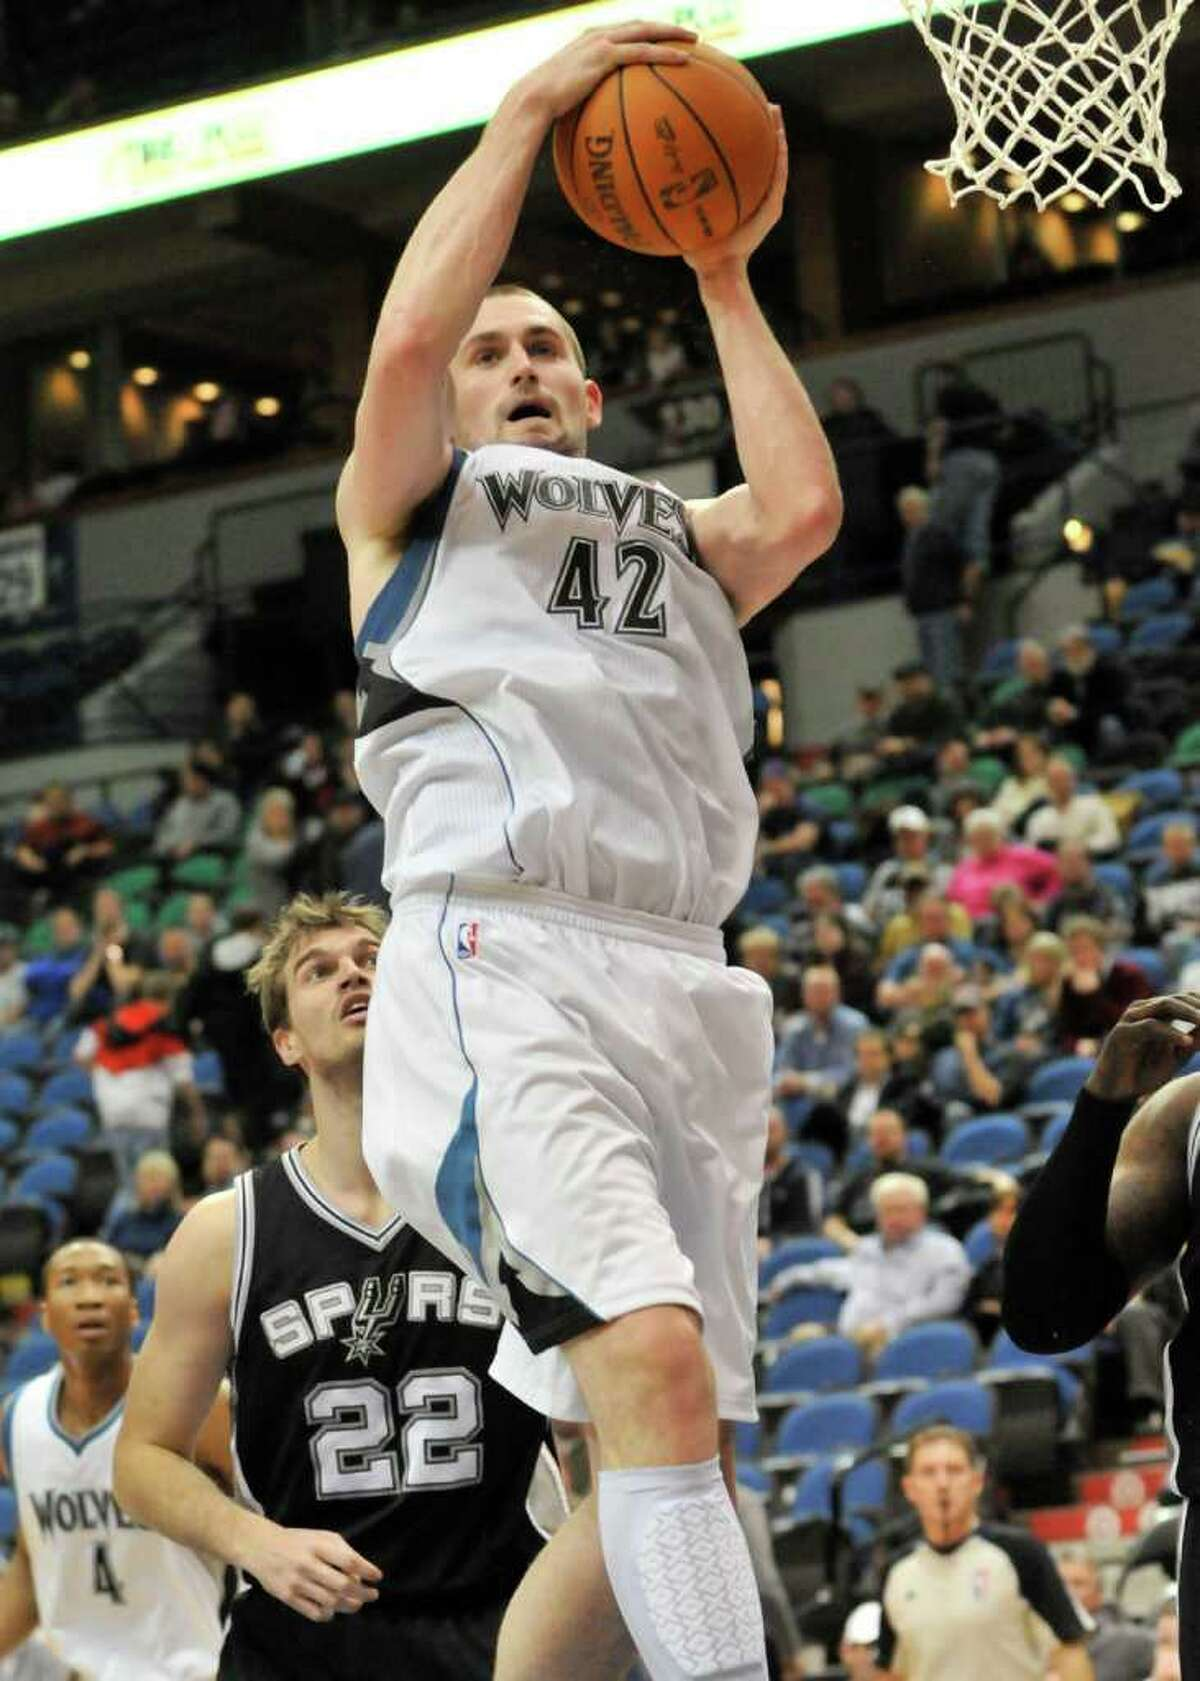 Minnesota Timberwolves' Kevin Love grabs a rebound as San Antonio Spurs' Tiago Splitter looks on during the second half of an NBA basketball game Tuesday, Jan. 11, 2011 in Minneapolis. The Spurs won 107-96.